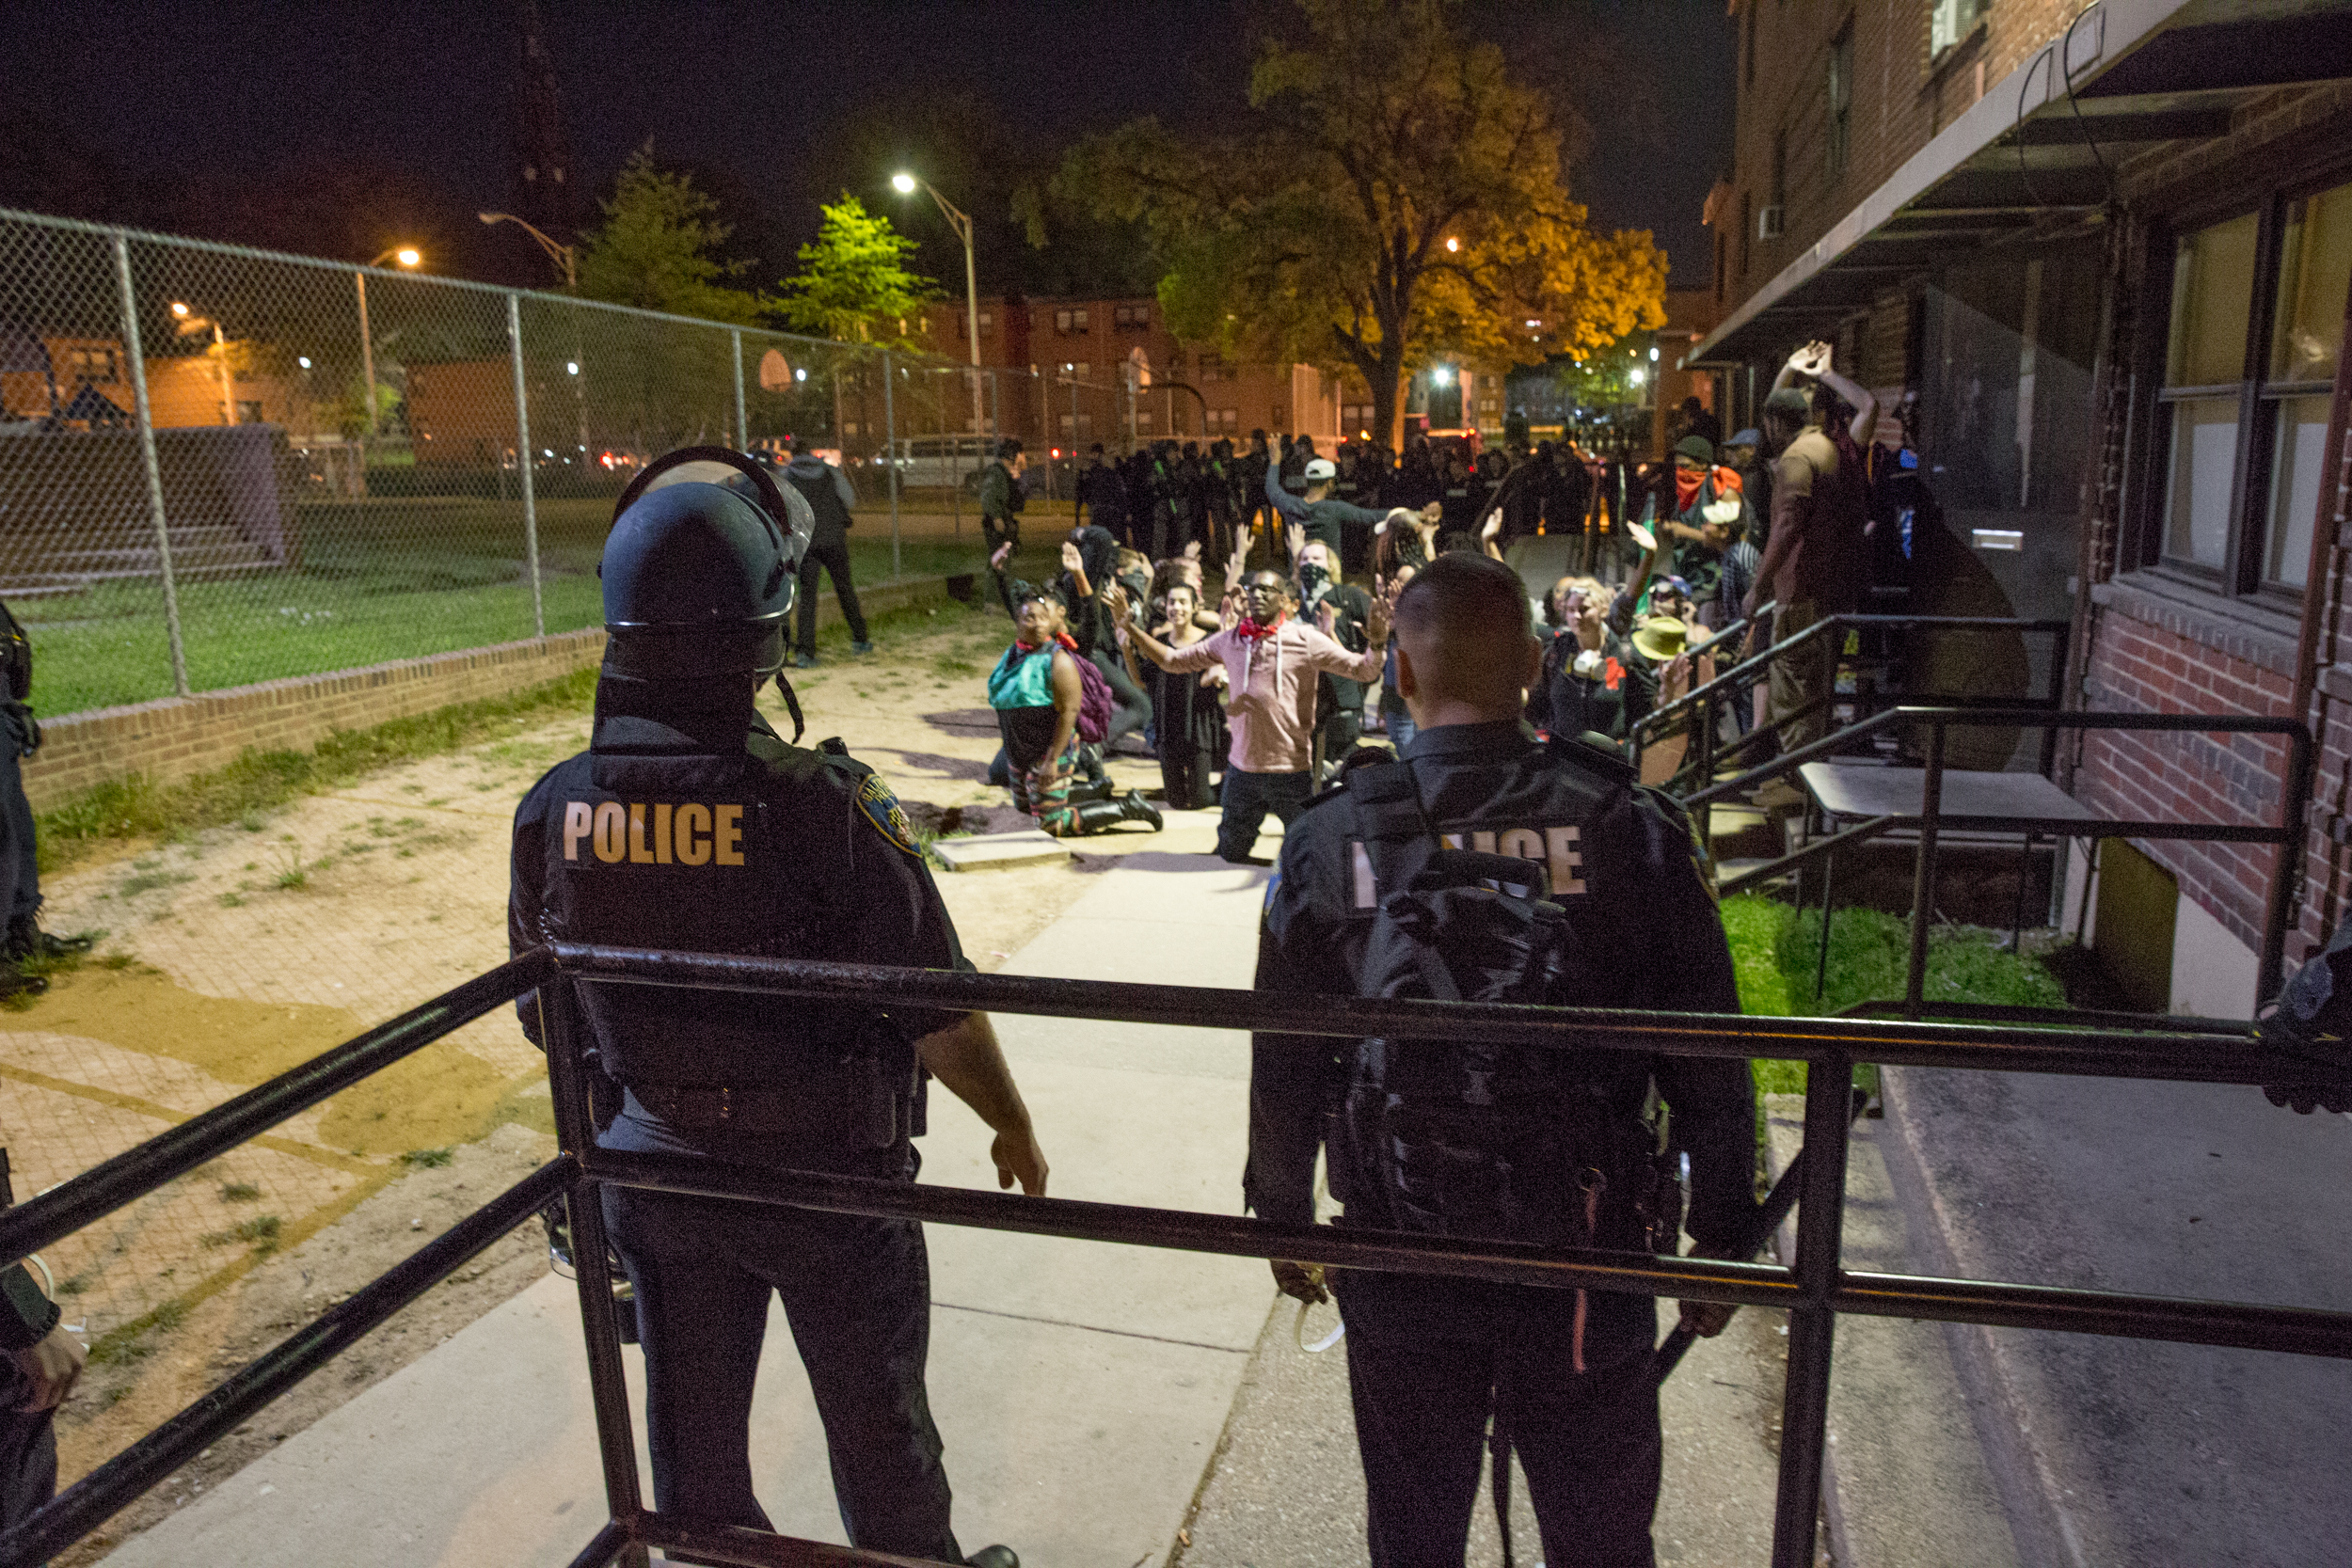 Police corner protestors post-curfew in a Greenmount housing project in Baltimore, Maryland.